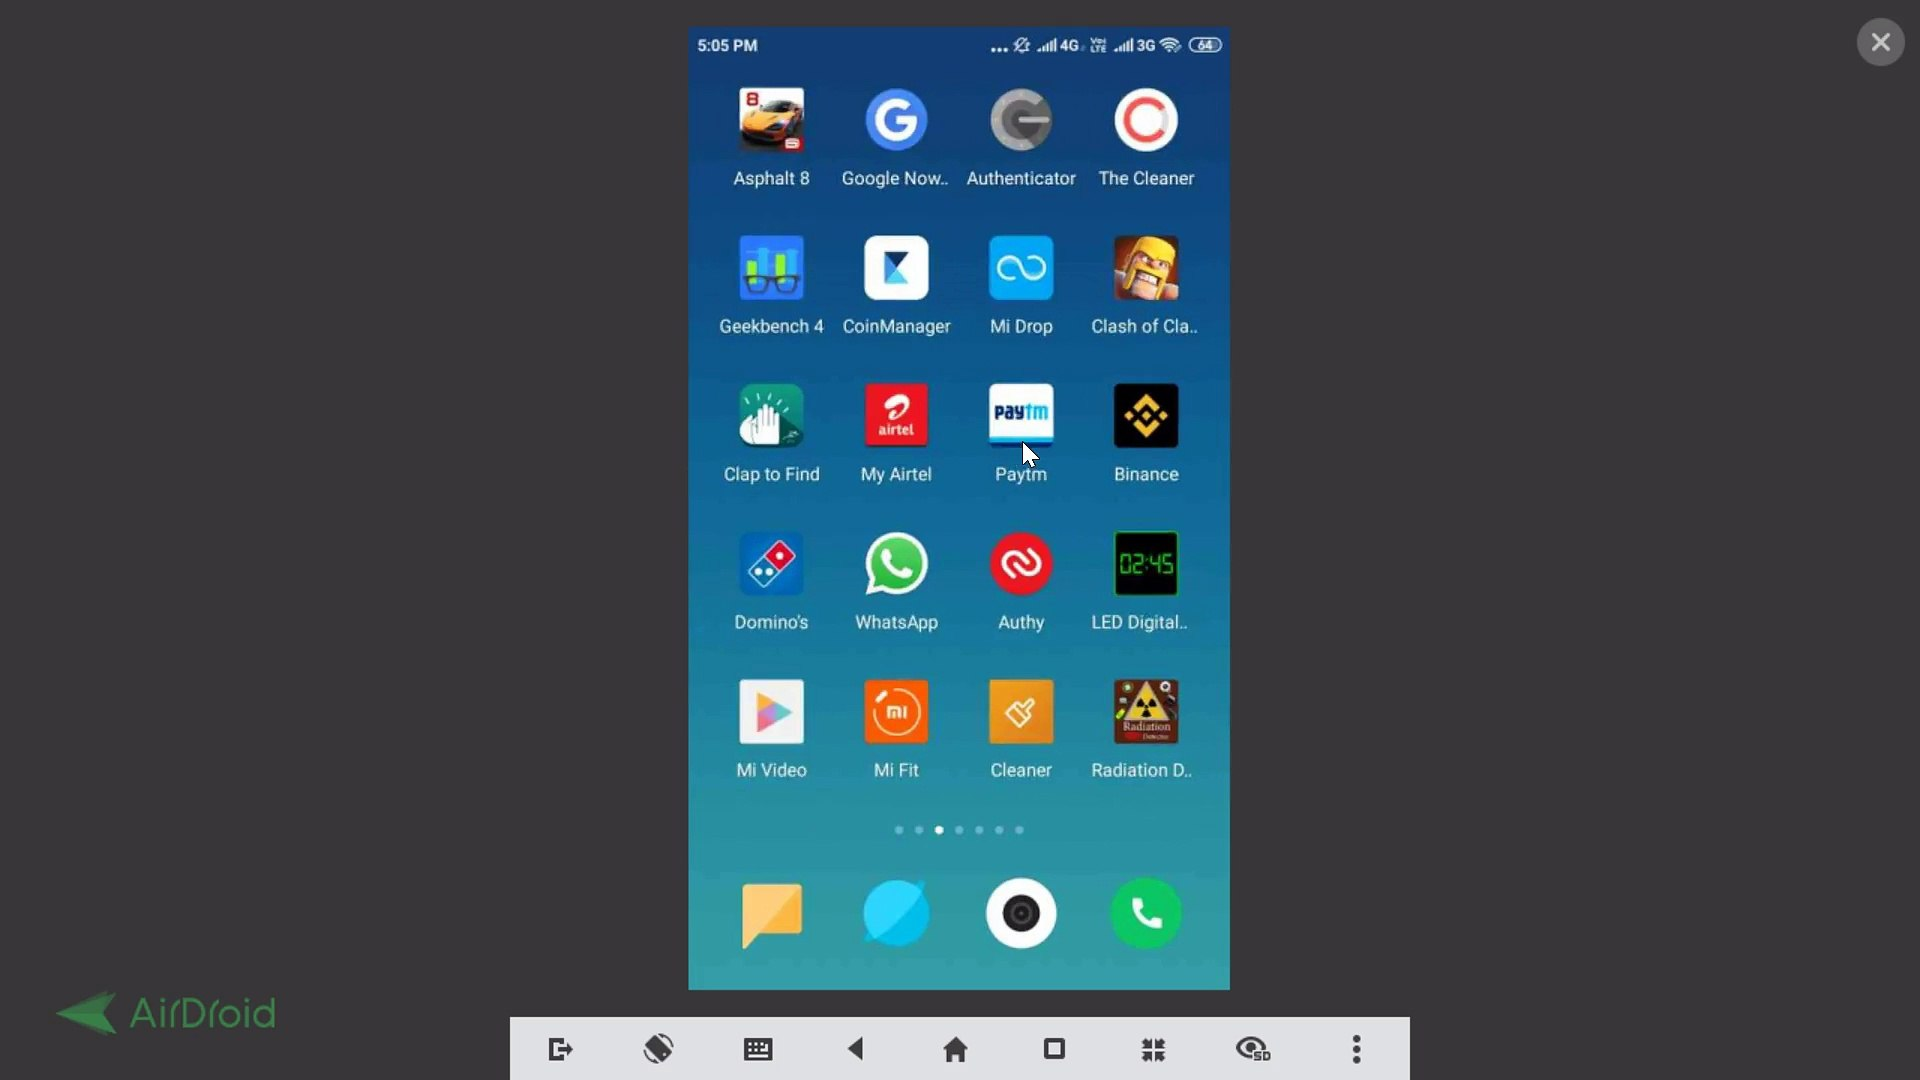 How to Enable Navigation Bar Buttons on MIUI 10 without Root Access(Redmi  Note 4)?